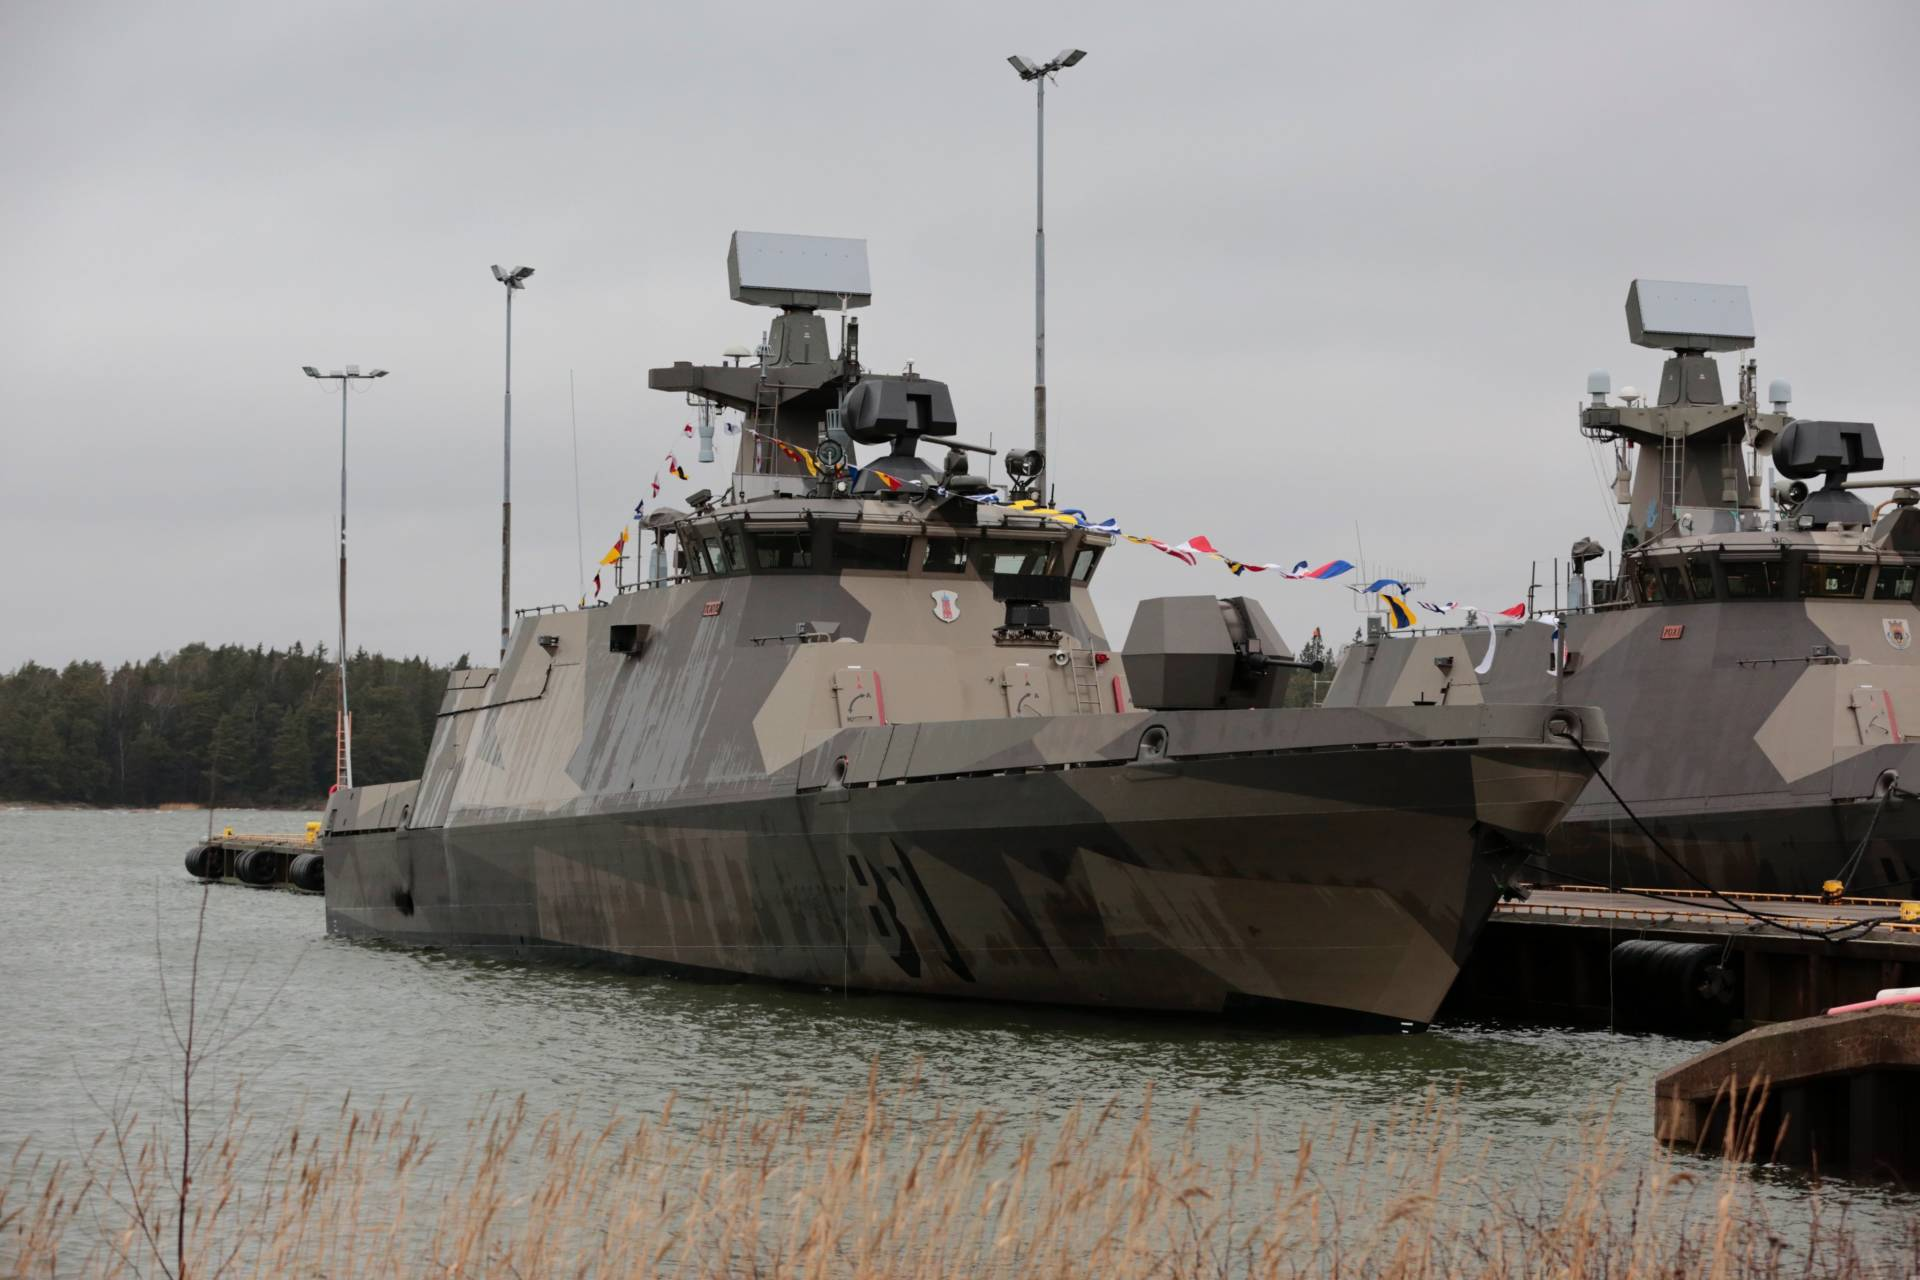 The Finnish Navy received the first upgraded Hamina-Class Missile Boat